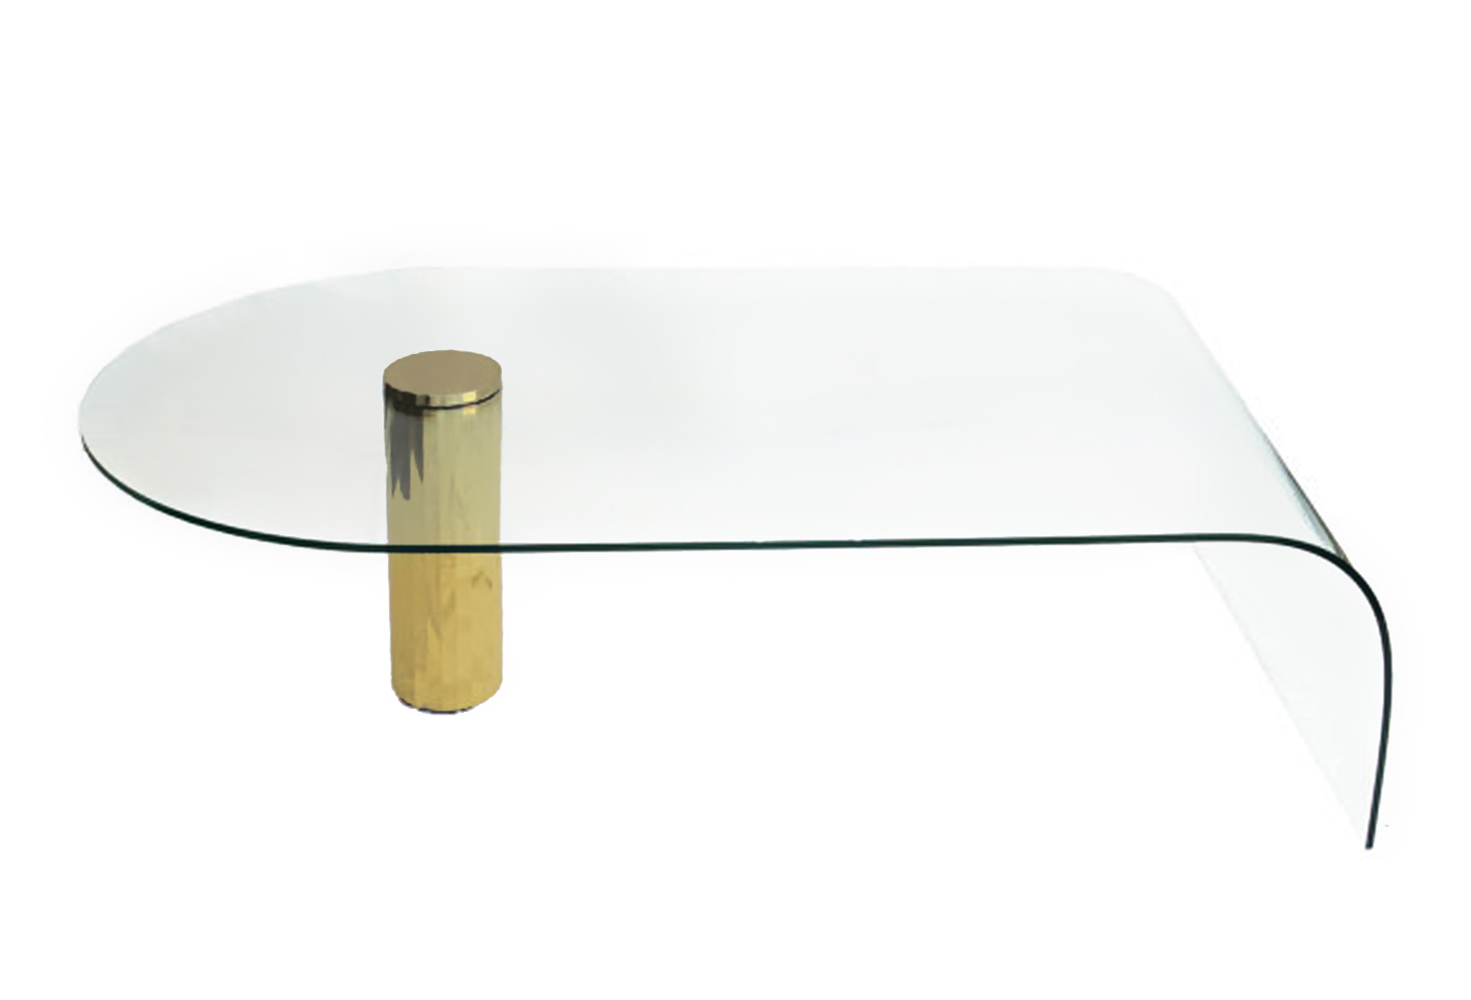 Glass Waterfall Coffee Table Contemporary Glass Coffee Tables With Minimalist Design Rustic Meets Elegant In This Spherical Rare Vintage Retro 60s A Younger (Image 2 of 10)